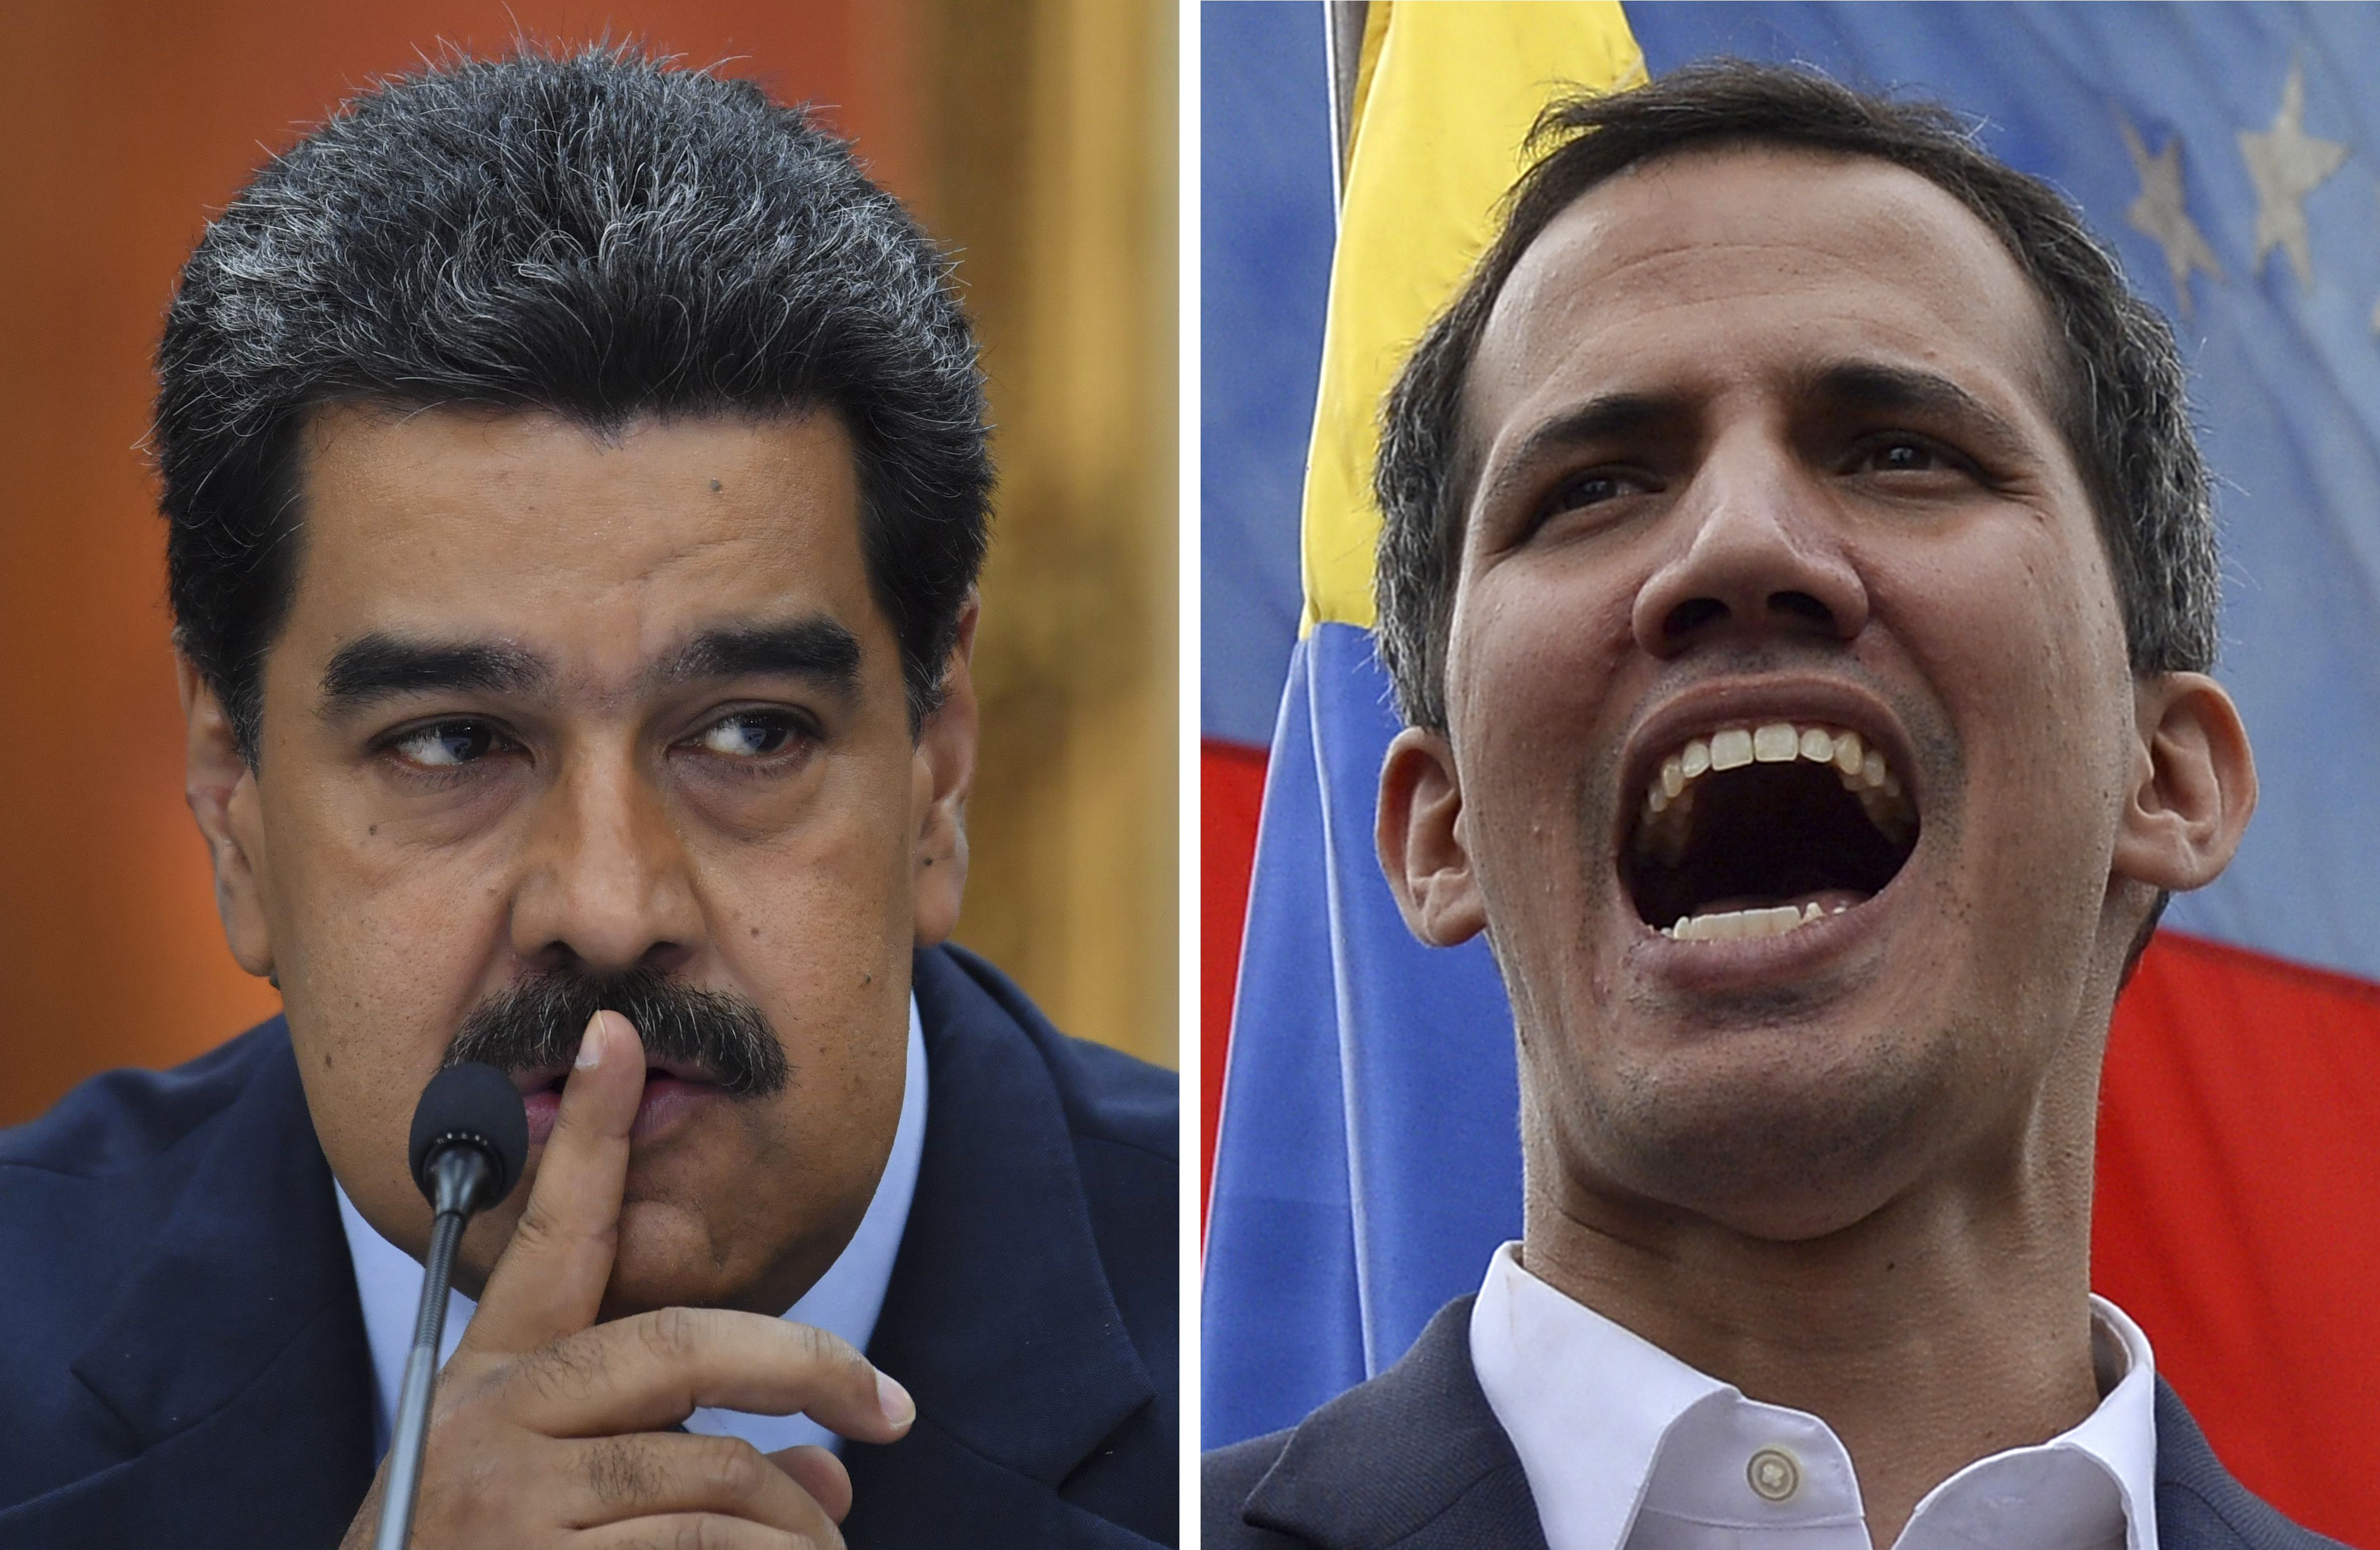 This combination of pictures created on February 5, 2019 shows Venezuelan President Nicolas Maduro gesturing during a press conference at Miraflores Presidential Palace in Caracas, on January 9, 2019 and Venezuela's National Assembly head Juan Guaido addressing the crowd during a mass opposition rally in Caracas on January 23, 2019. - International clamor for snap elections in Venezuela intensified as European powers recognized opposition chief Juan Guaido as interim leader, after President Nicolas Maduro rejected an ultimatum to call early voting. (STF/AFP/Getty Images)